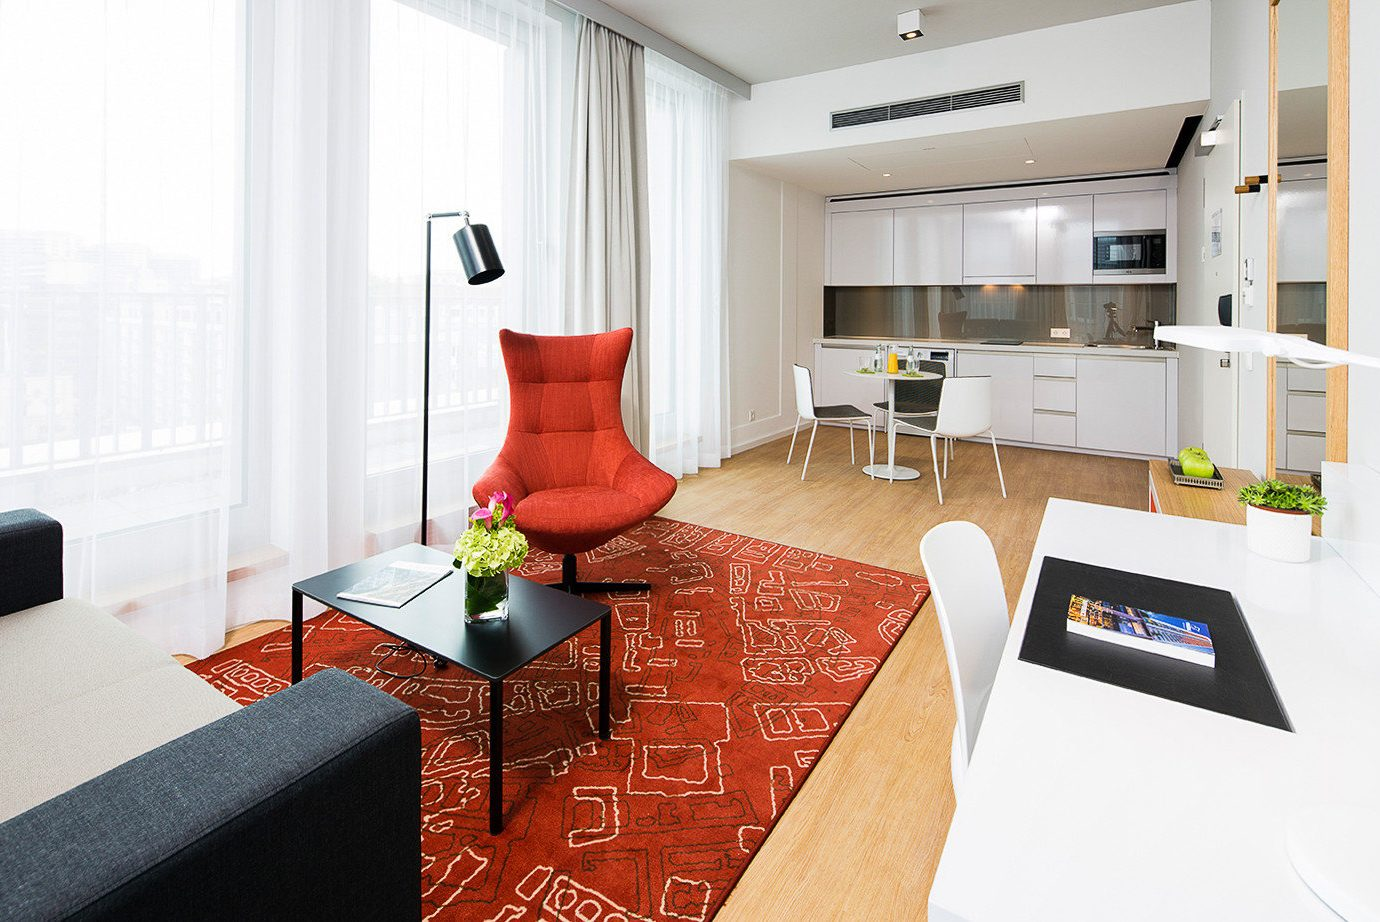 Trip Ideas indoor floor wall window room Living interior design red living room product real estate product design interior designer apartment flooring furniture